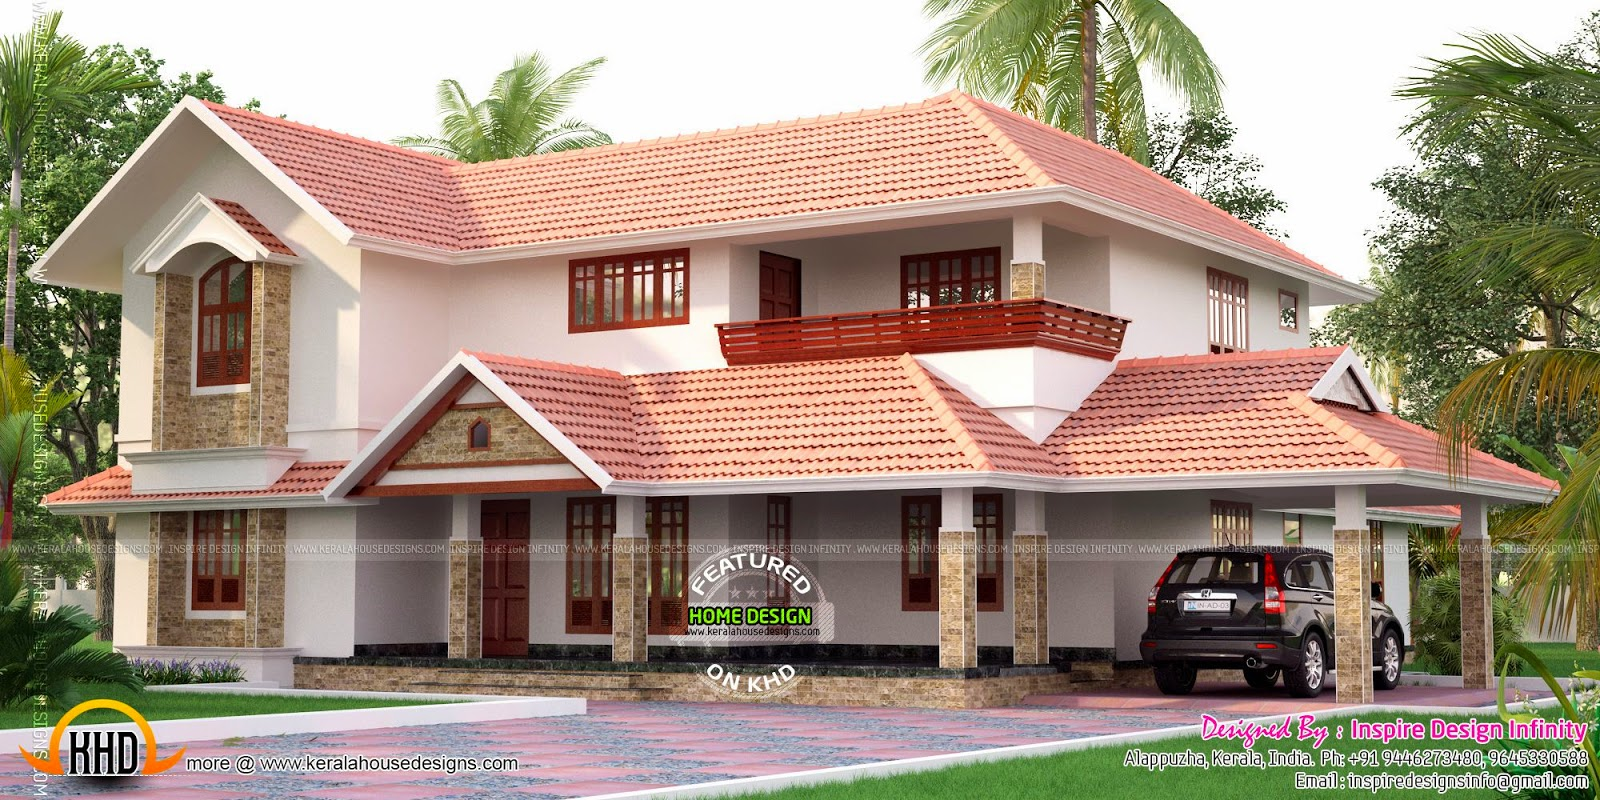 Kerala exterior model homes home design - Kerala exterior model homes ...